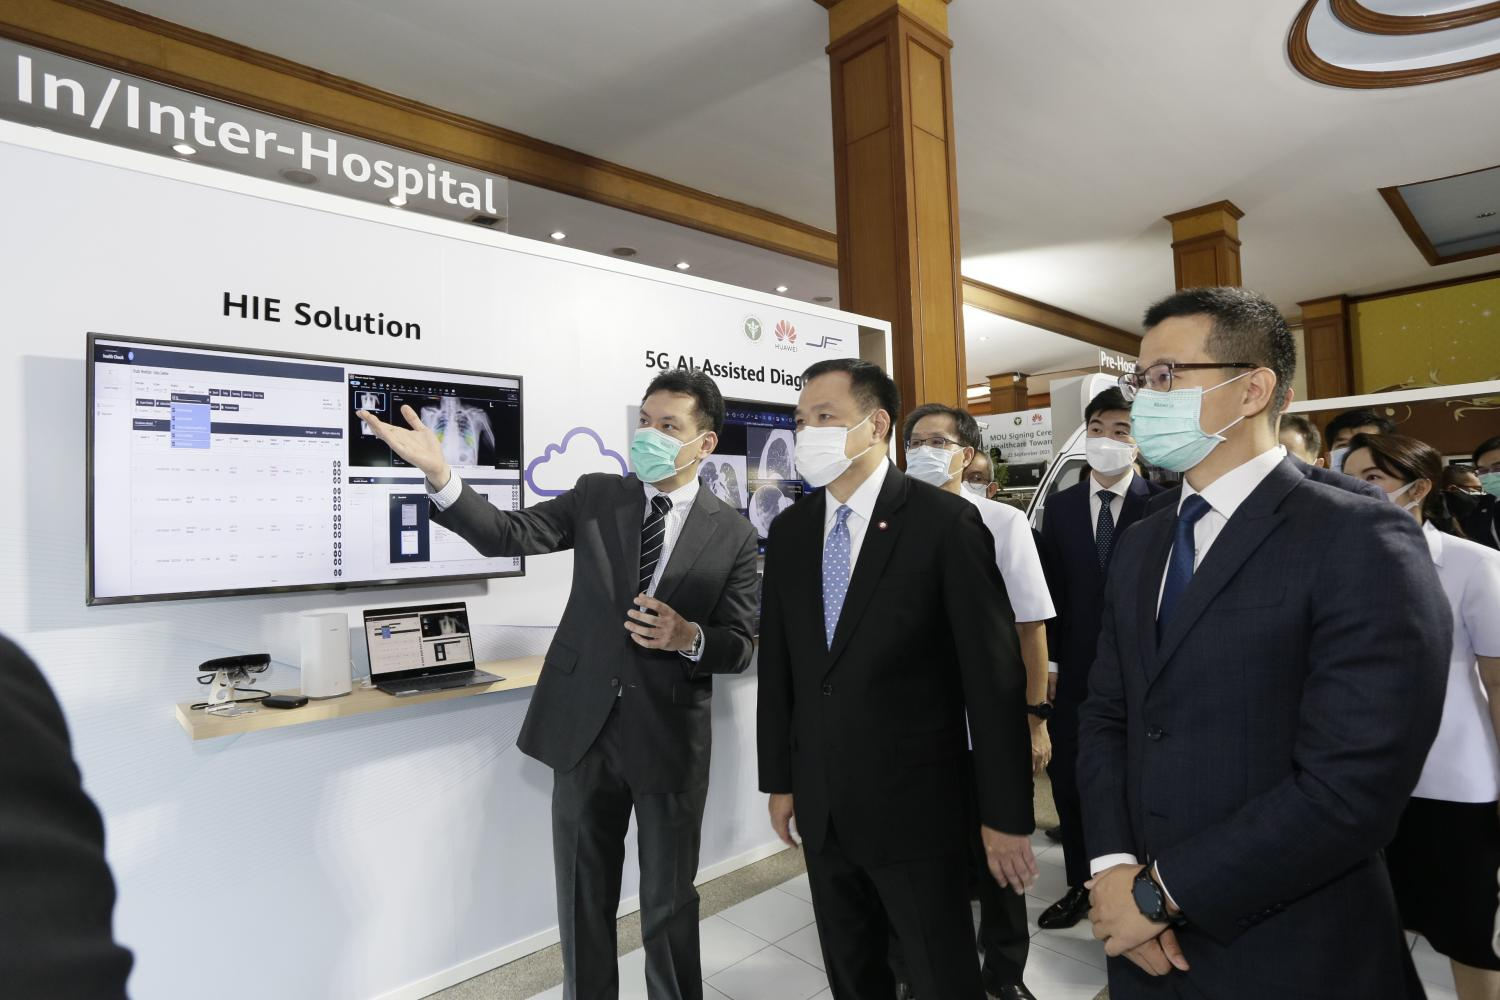 Huawei in 5G partnership with hospitals